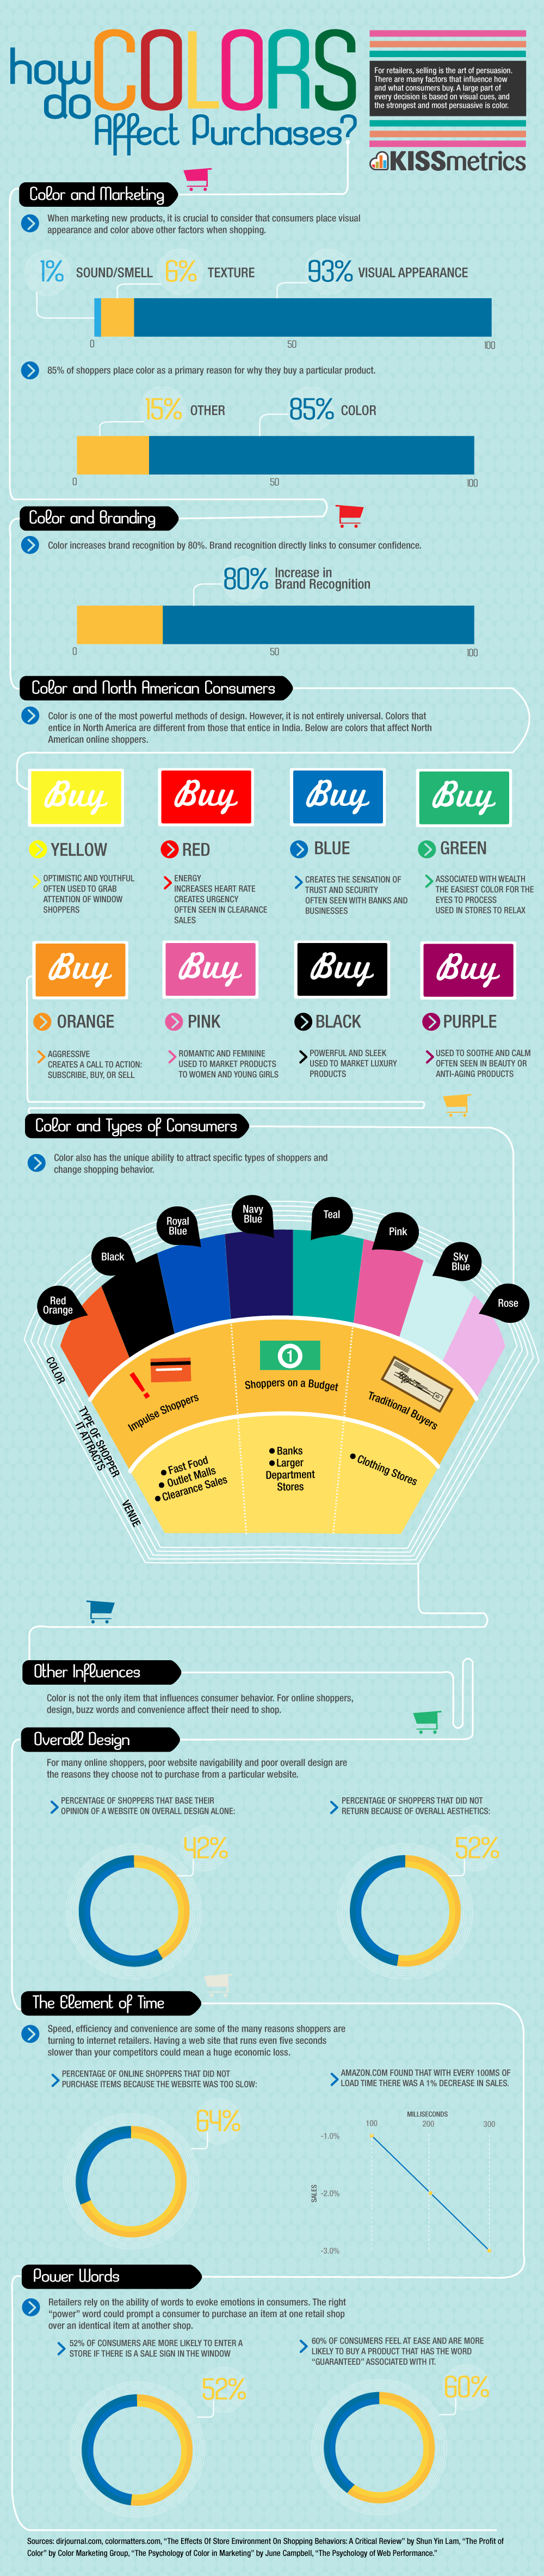 website color psychology